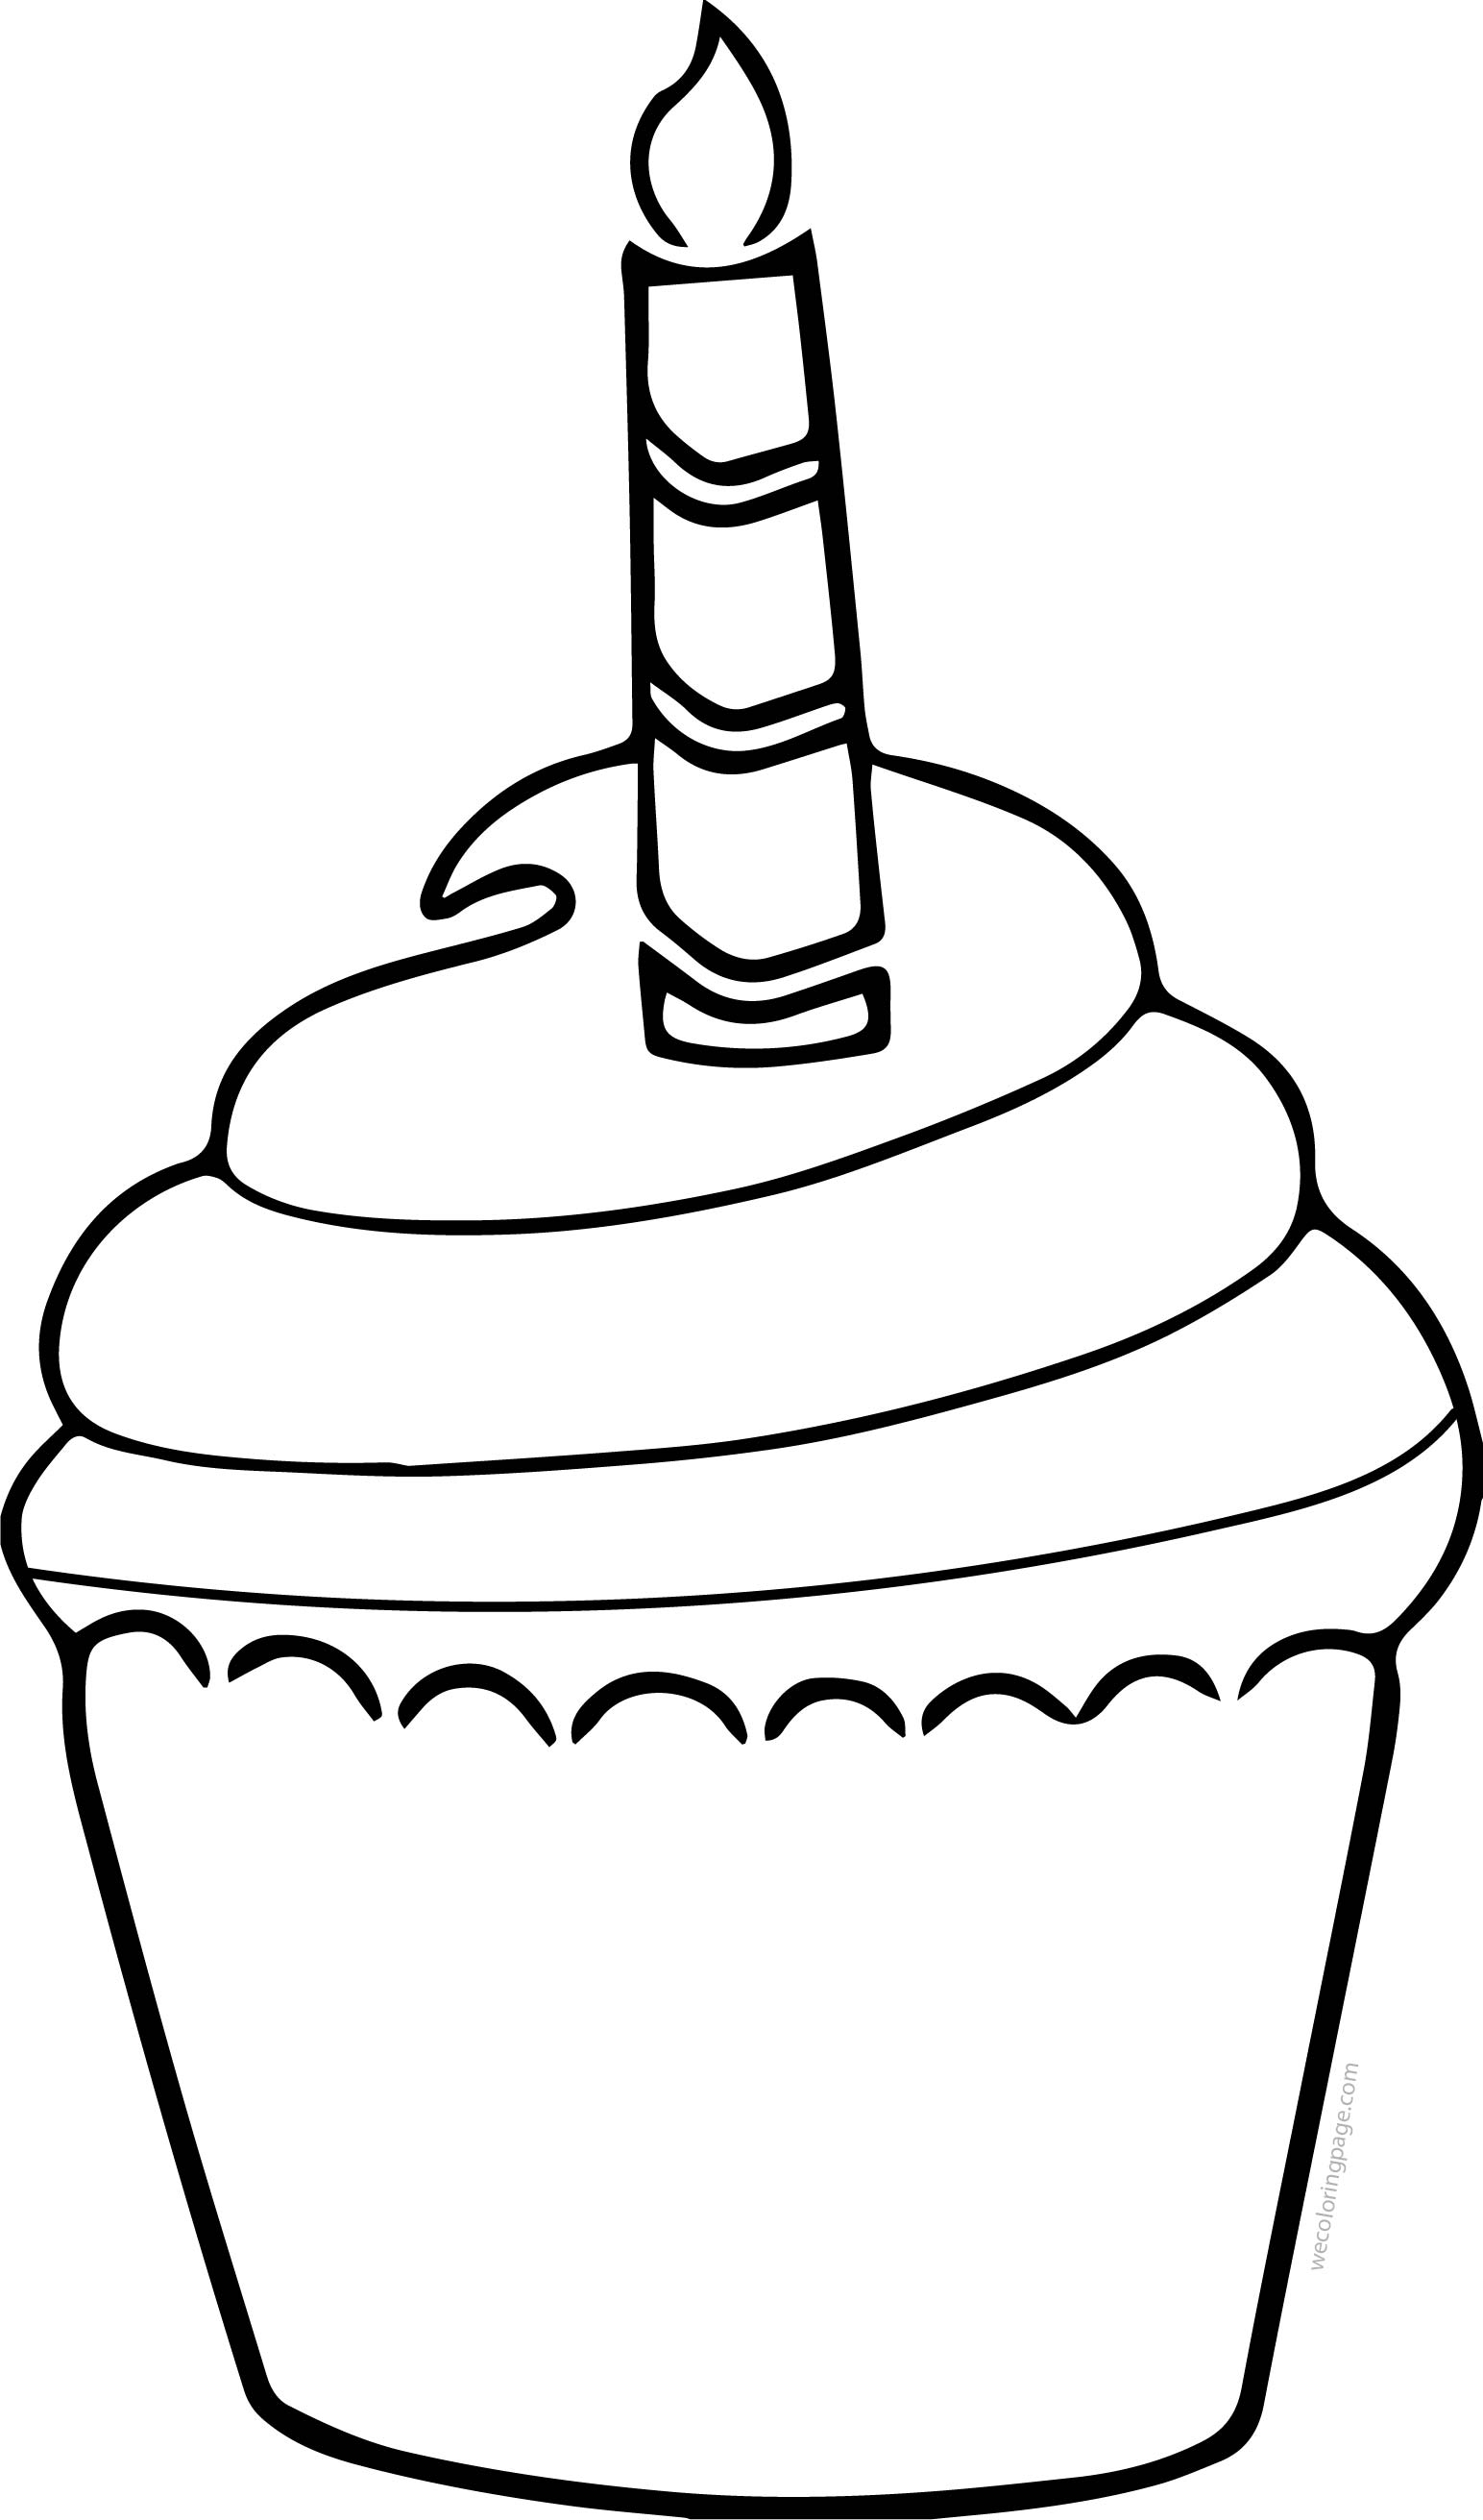 Cupcake Cup Cake Crema Coloring Page